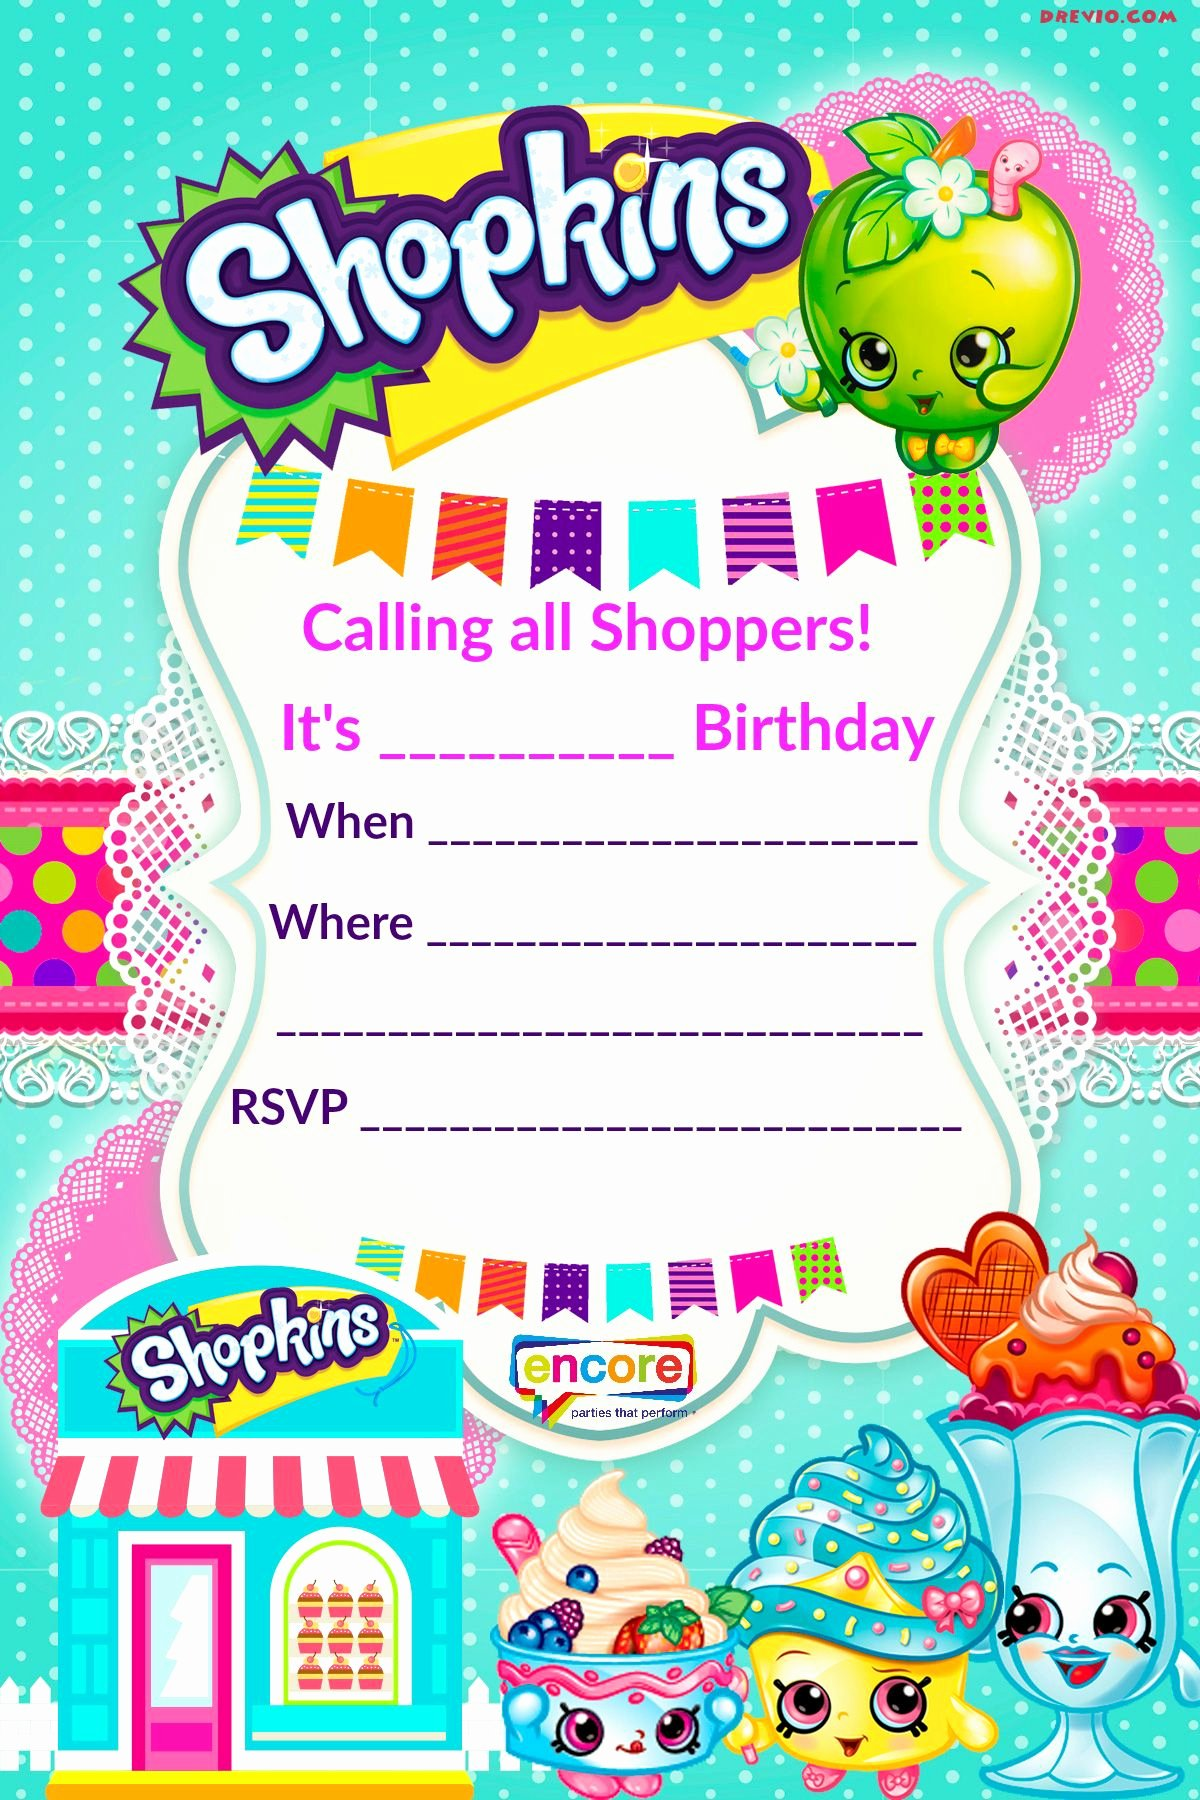 Shopkins Invitations Template Free Awesome Updated – Free Printable Shopkins Birthday Invitation